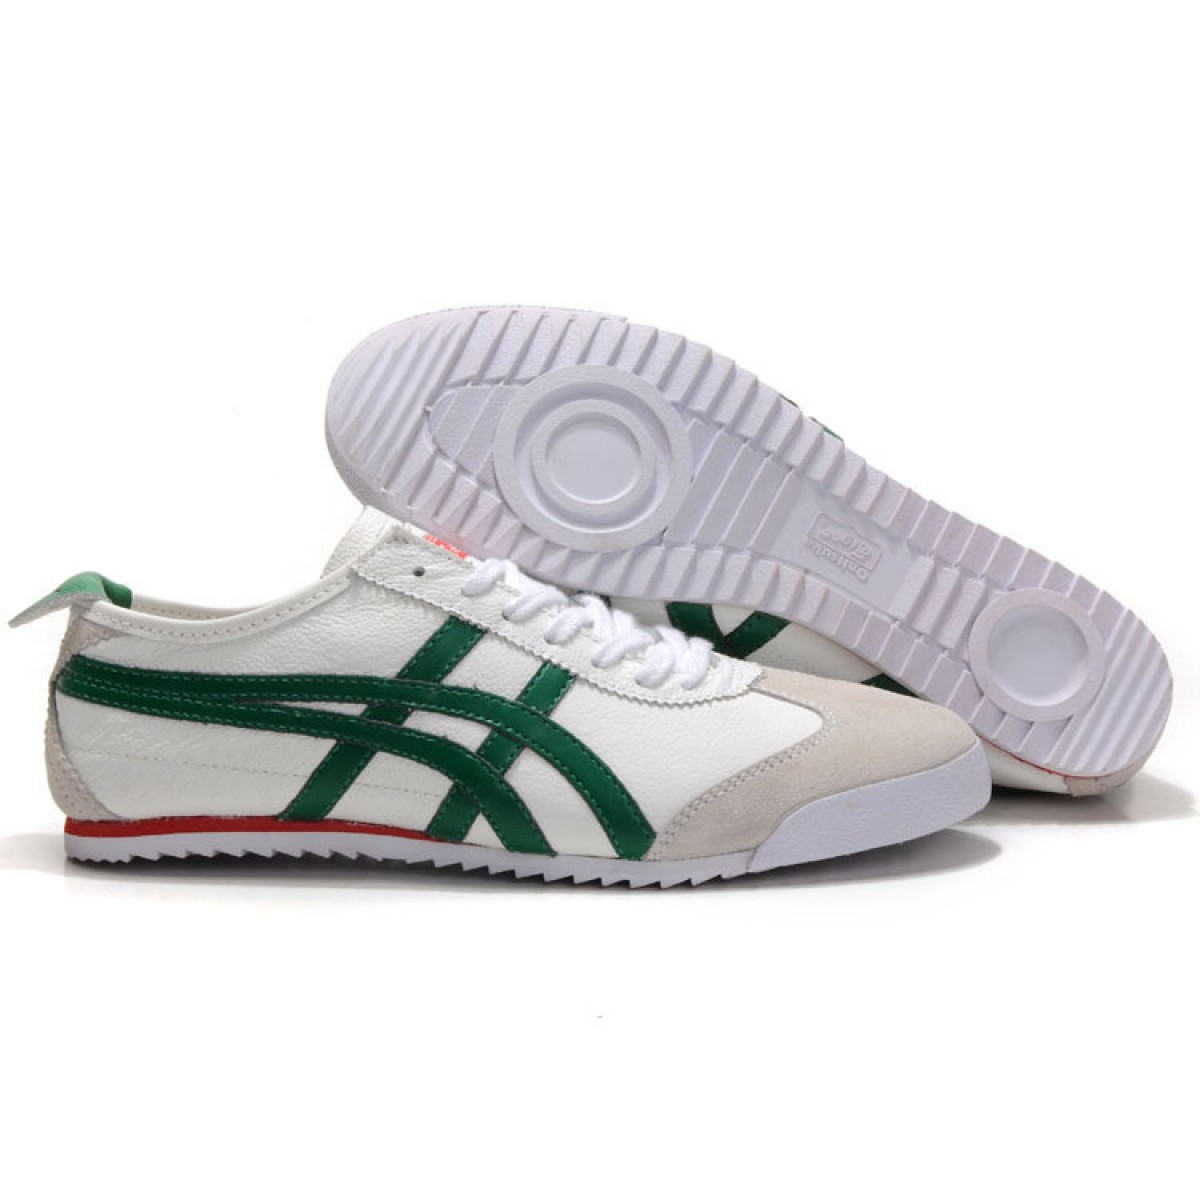 KH5256 Soldes Asics Mexico 66 Deluxe Homme vert blanc 00316062 Pas Cher